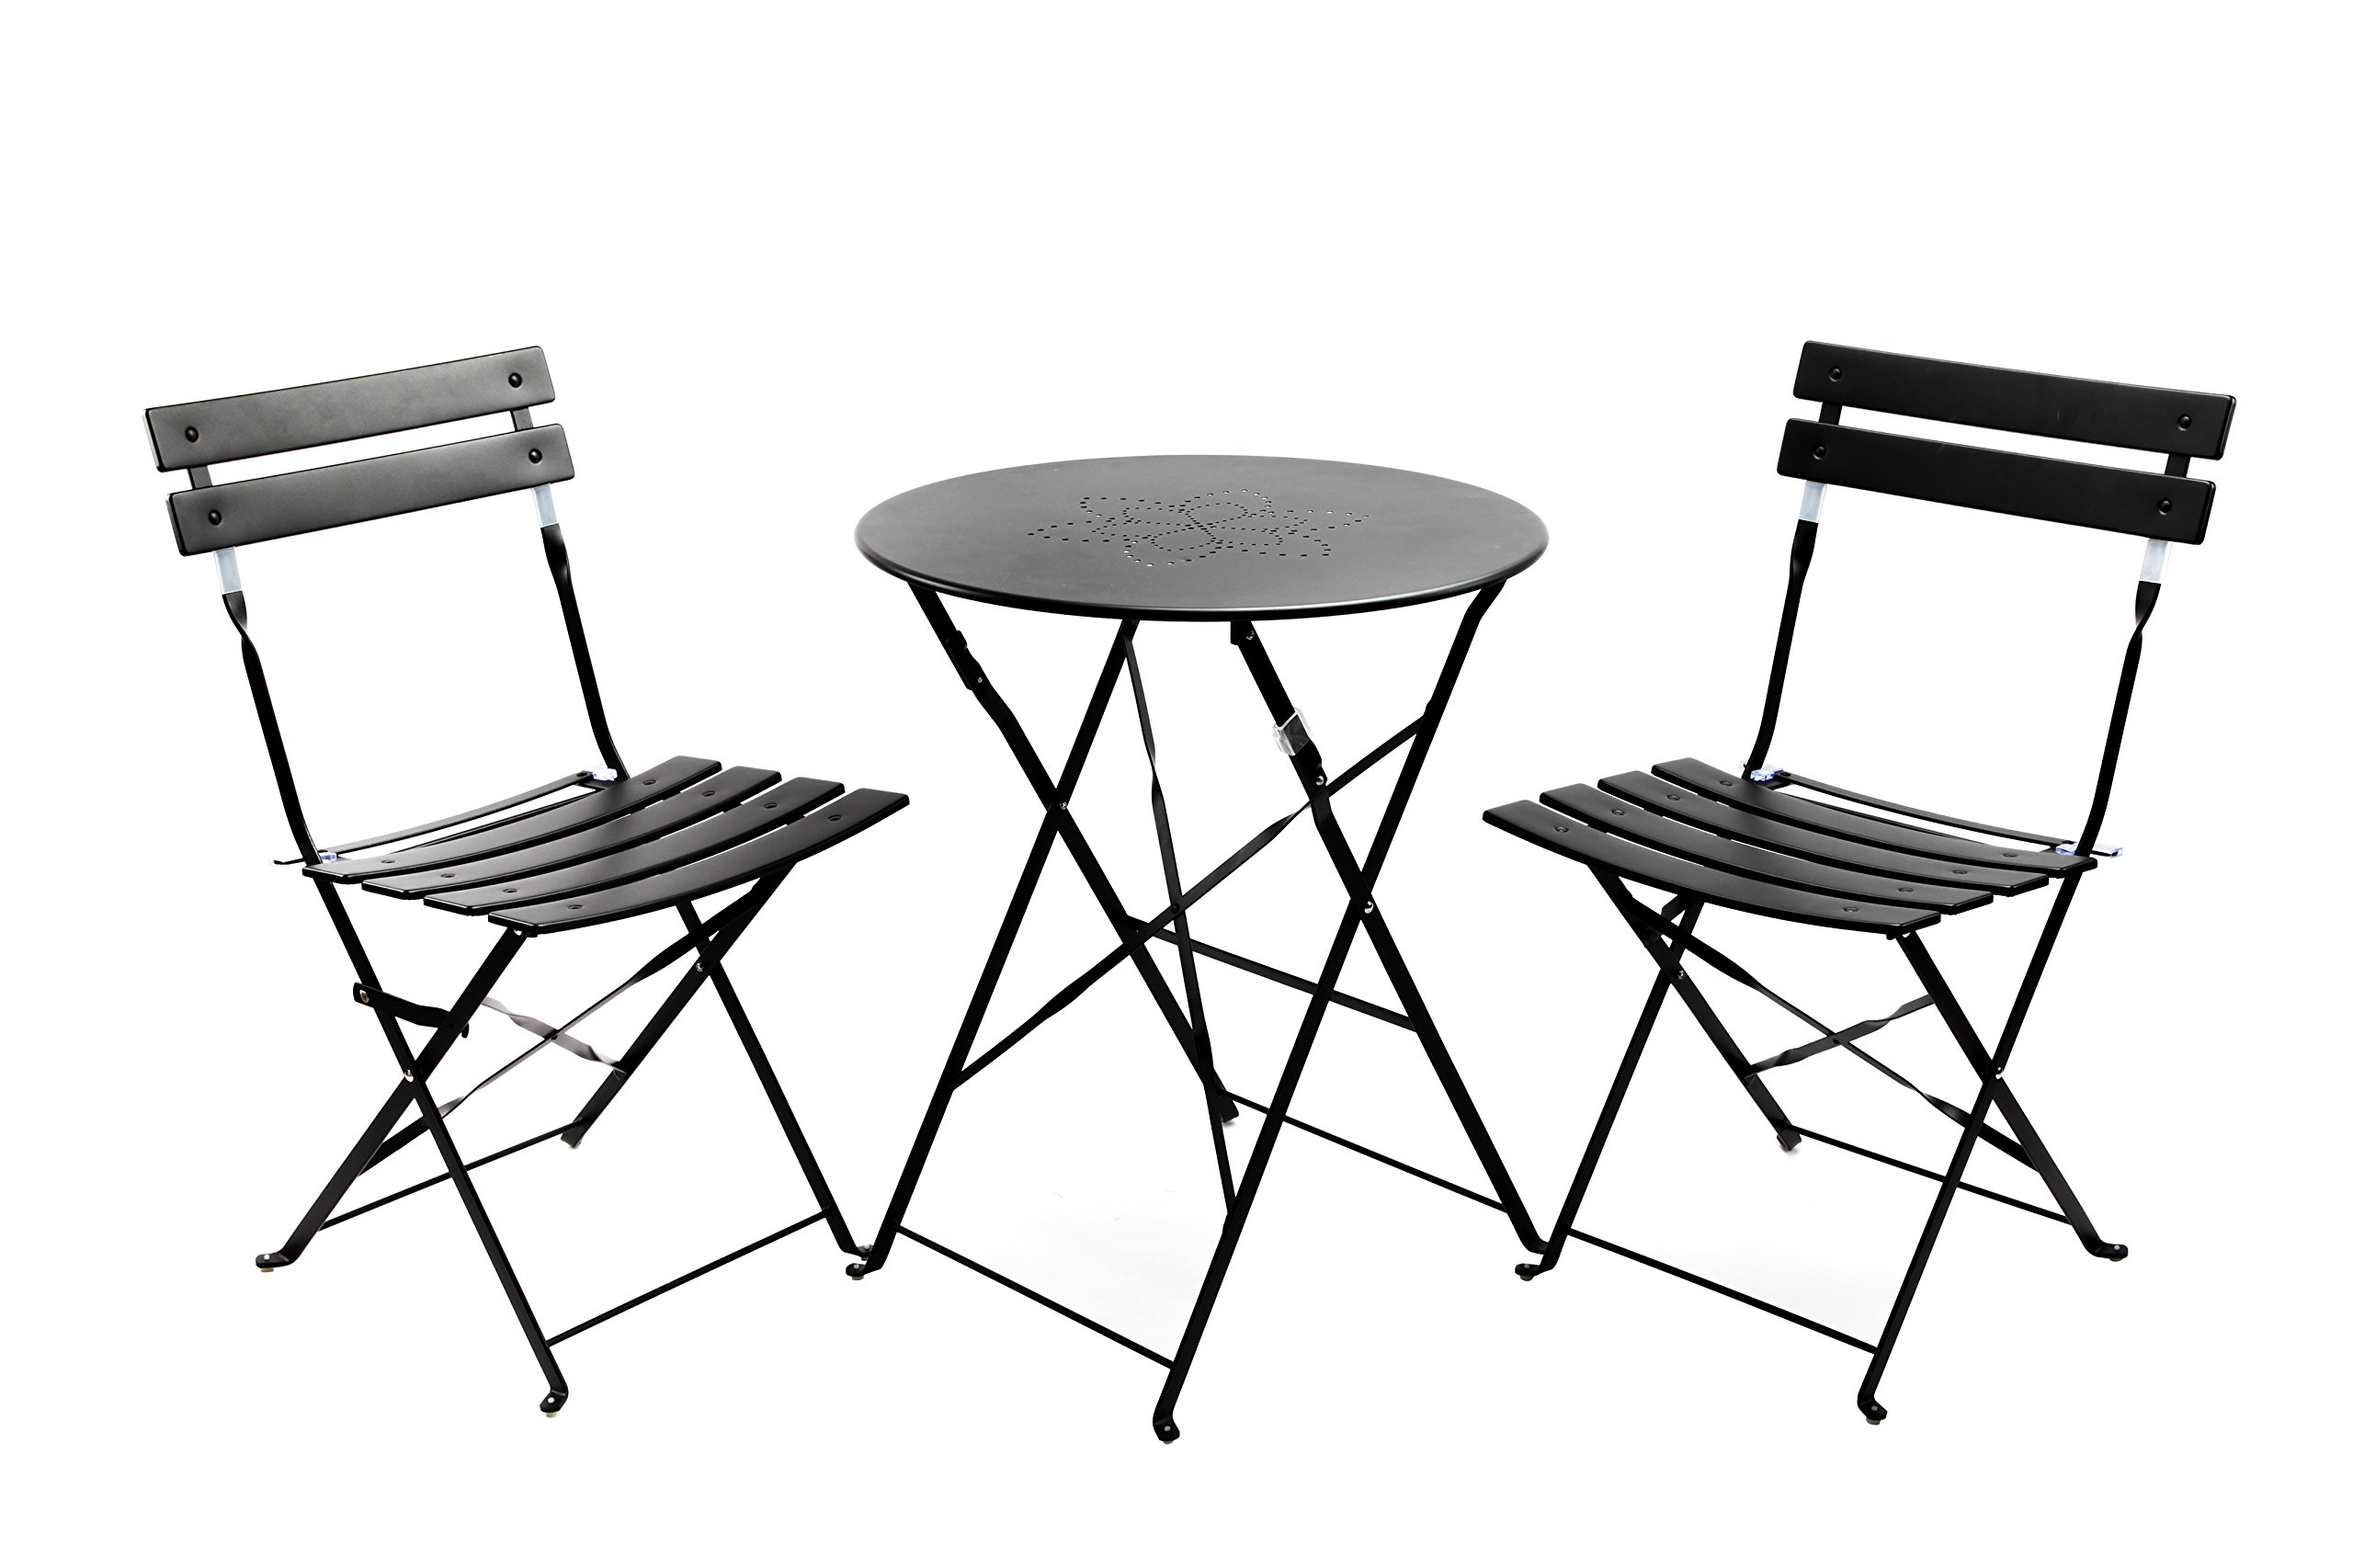 Cheap patio bar table sets find patio bar table sets deals on line get quotations finnhomy slatted 3 piece outdoor patio furniture sets bistro sets steel folding table and chair set watchthetrailerfo